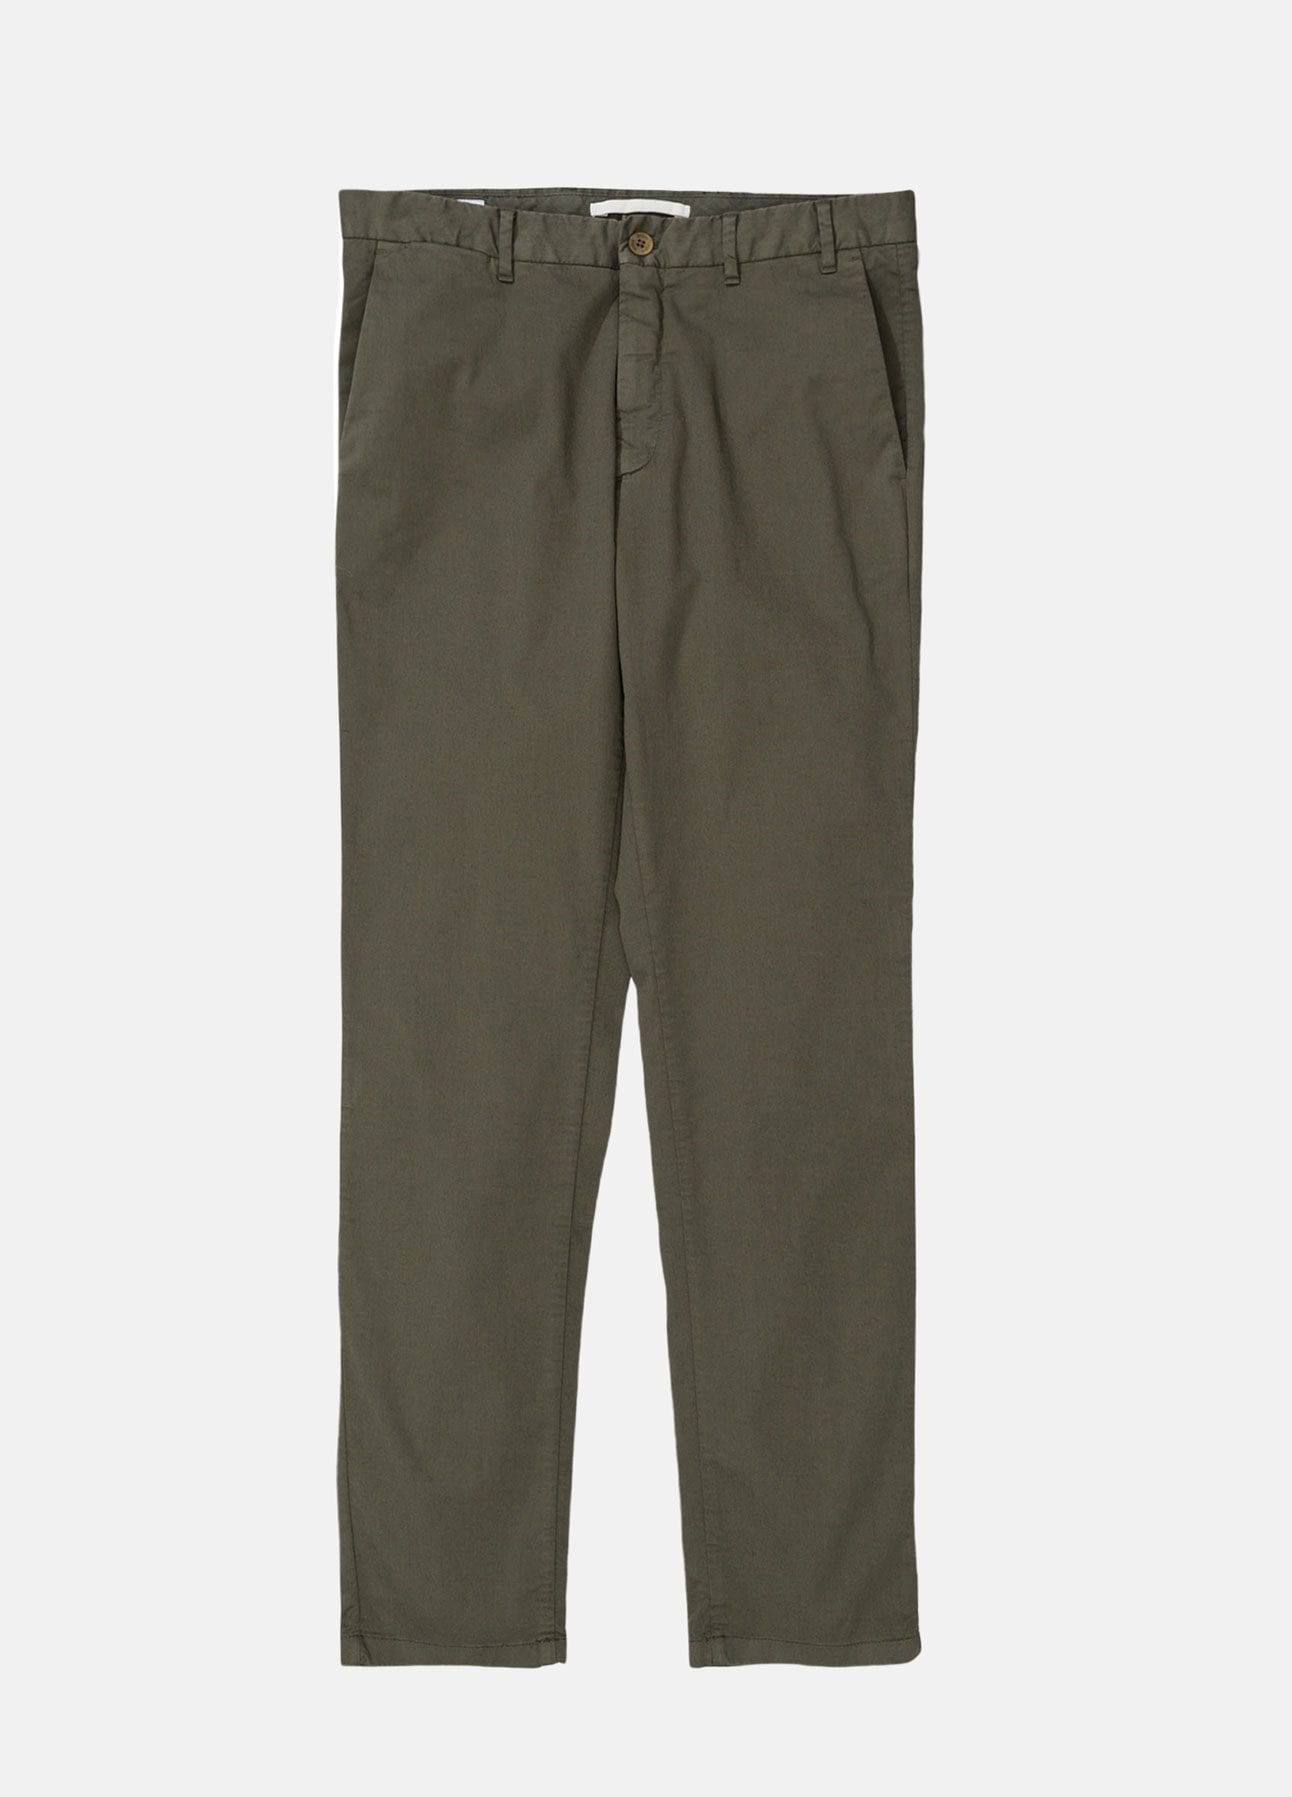 grøn aros slim light stretch chinos fra norse projects